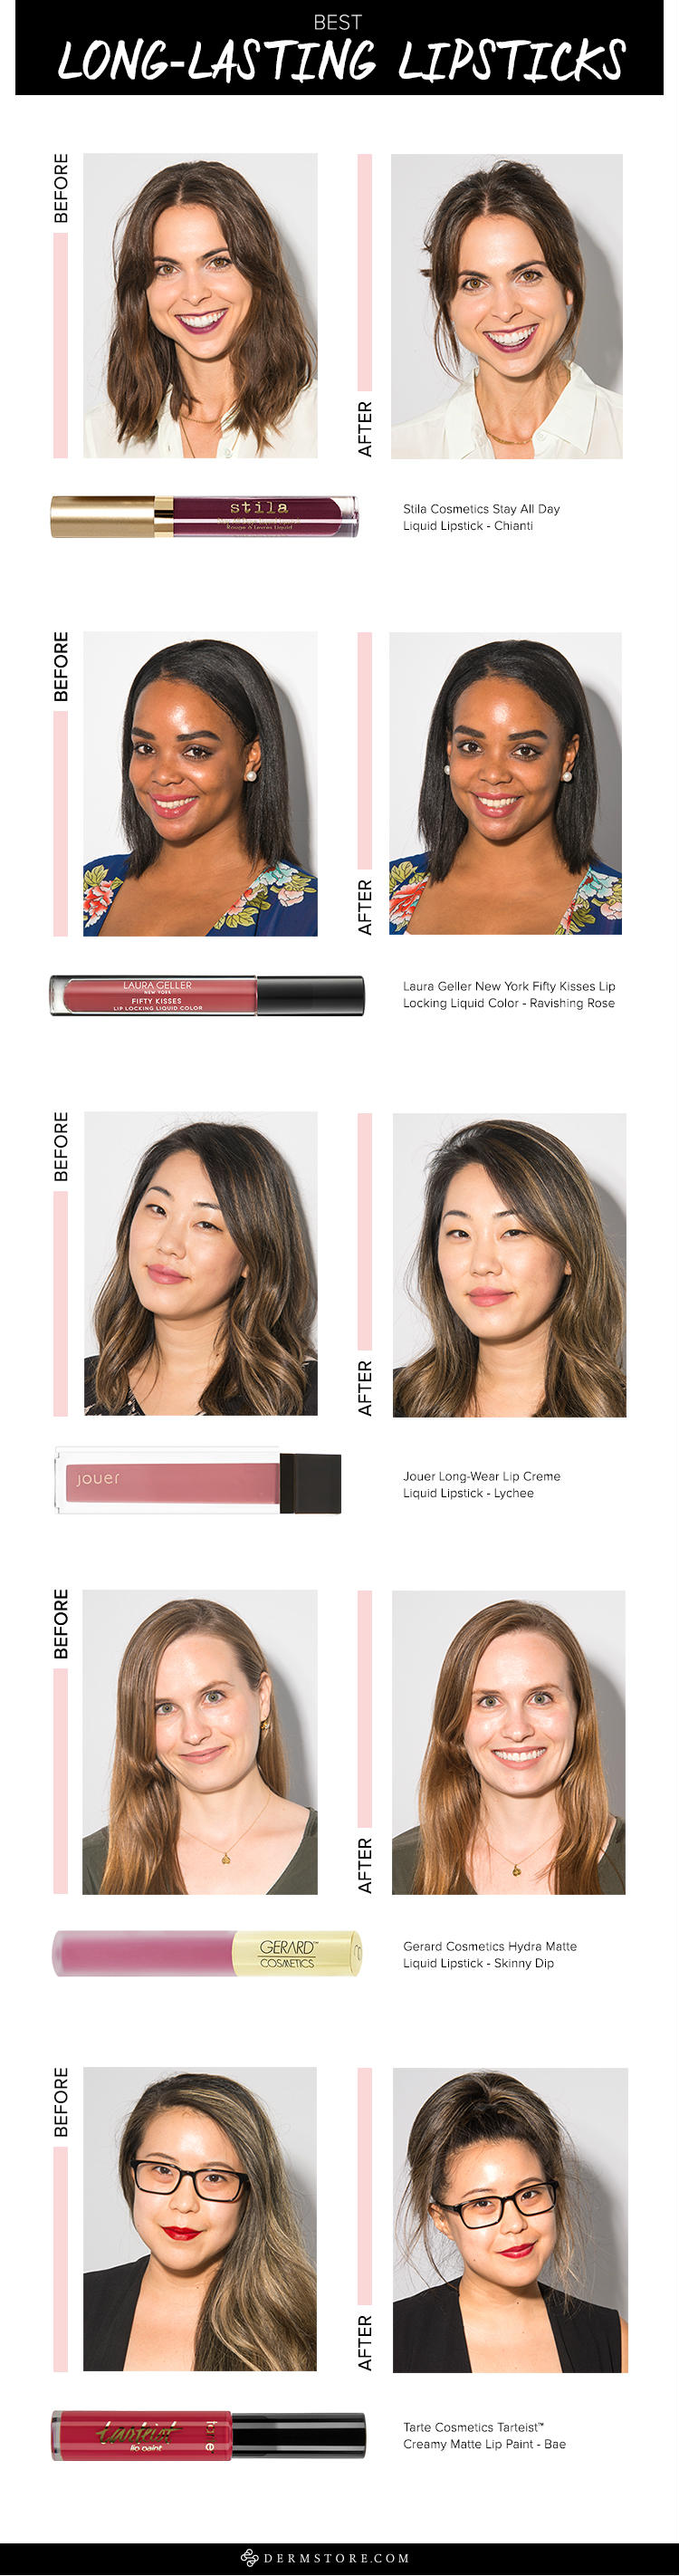 long lasting lipsticks before and after photos